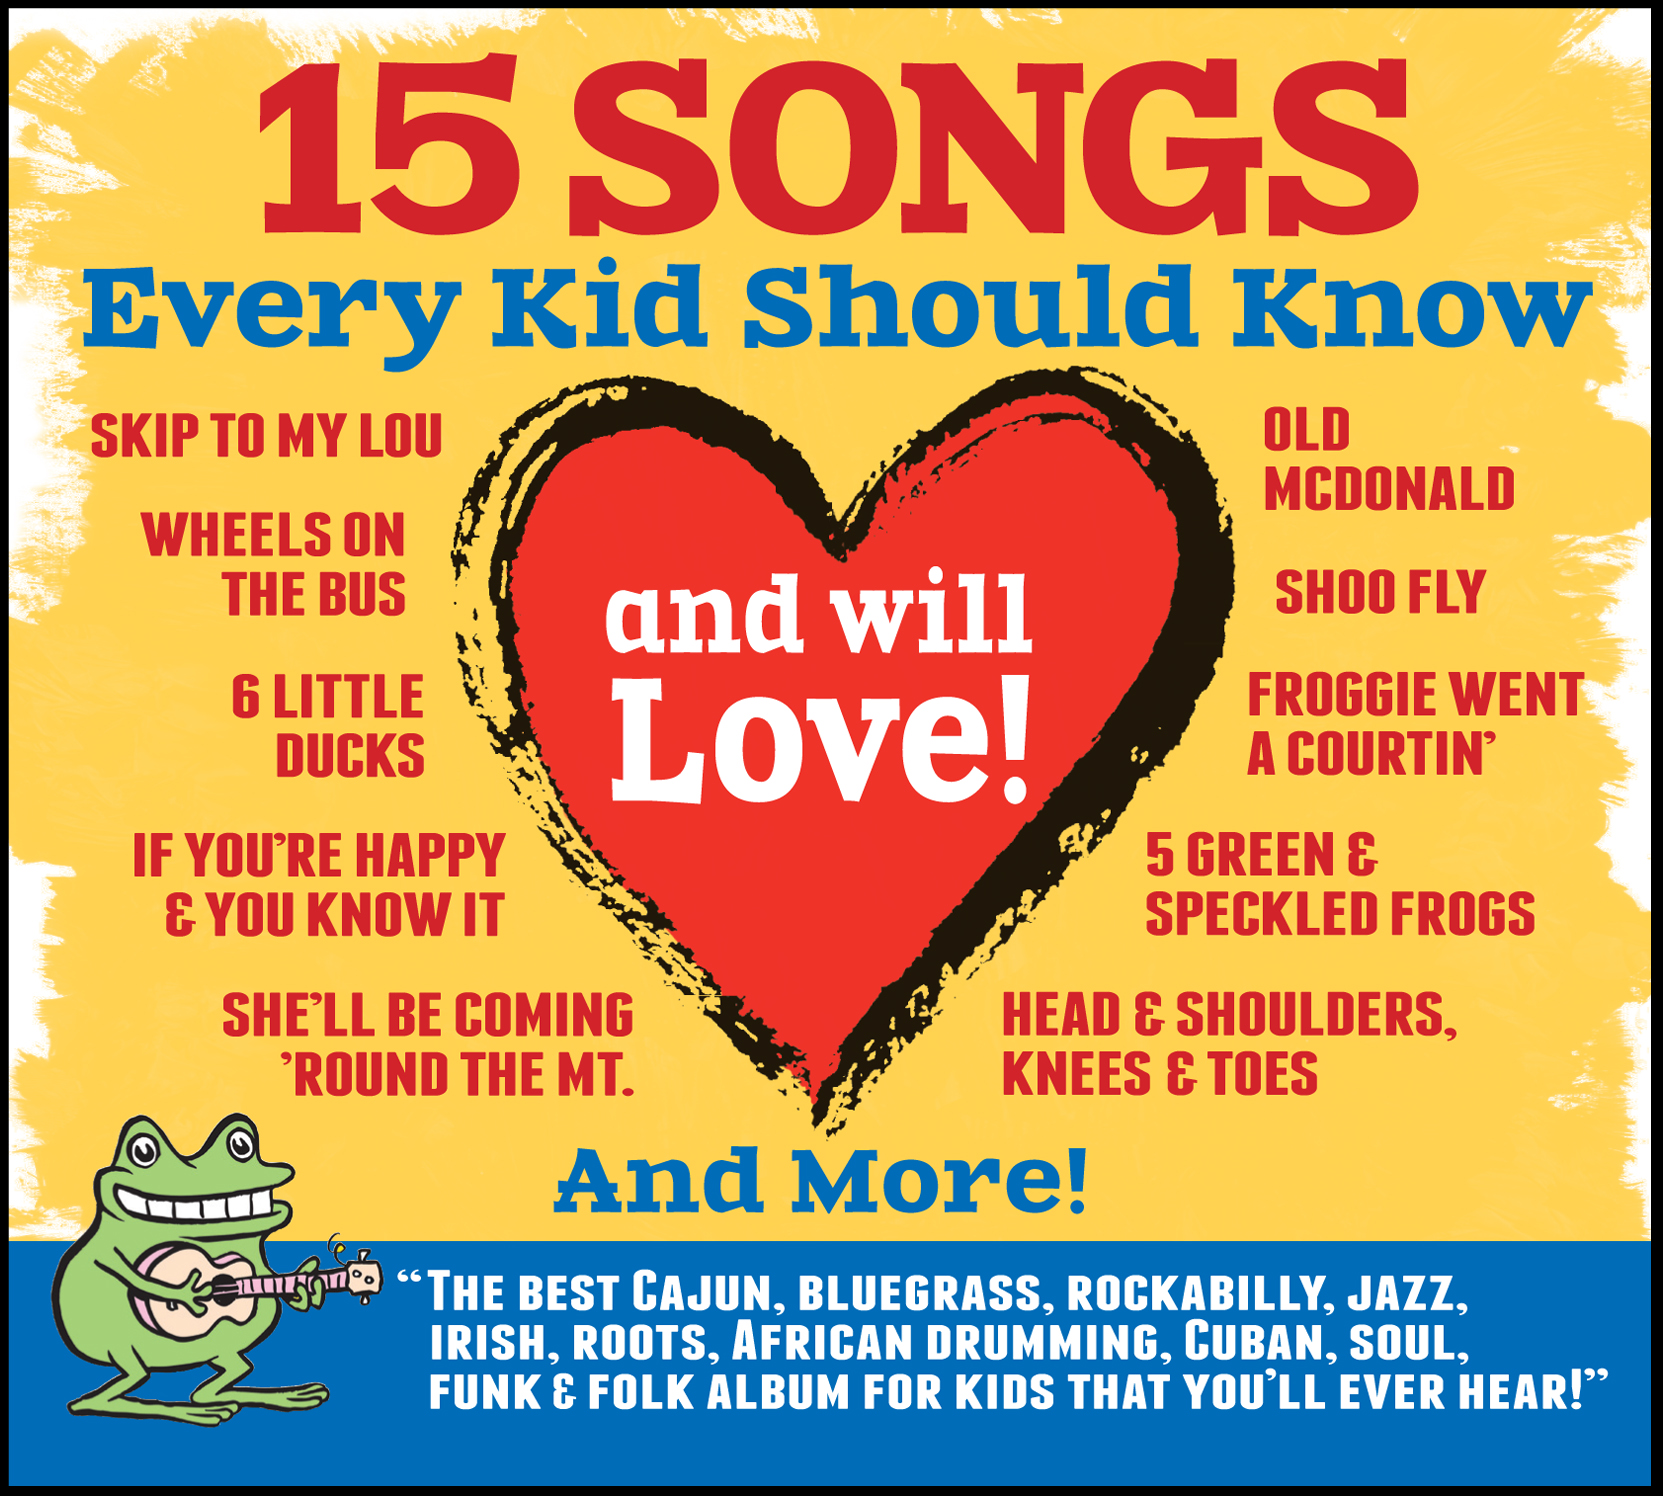 15 Songs Every Kid Should Know CD Release & Review